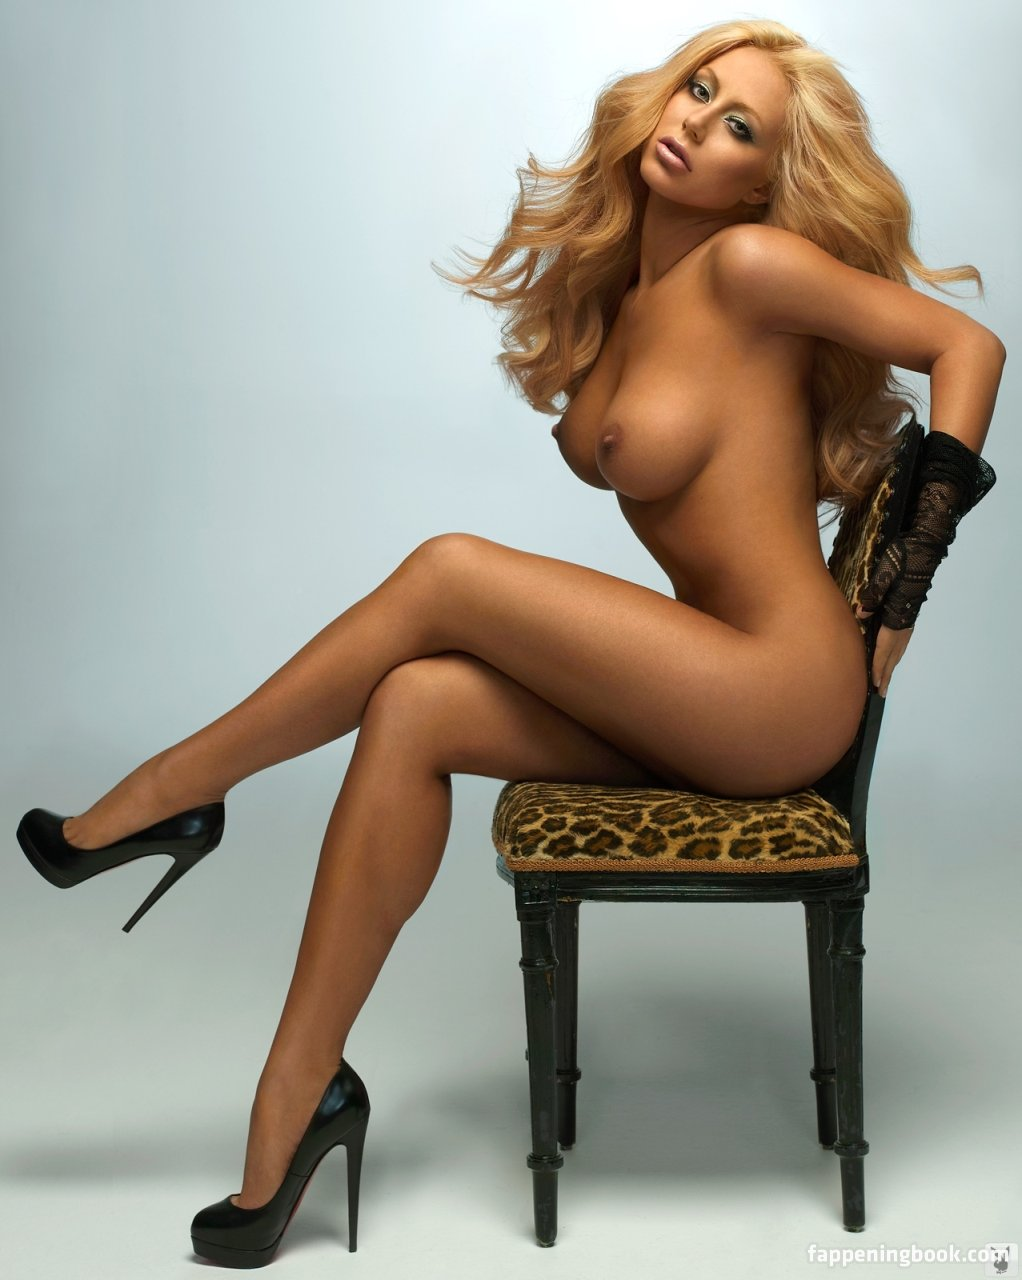 Altair Jarabo Naked aubrey o'day nude, sexy, the fappening, uncensored - photo